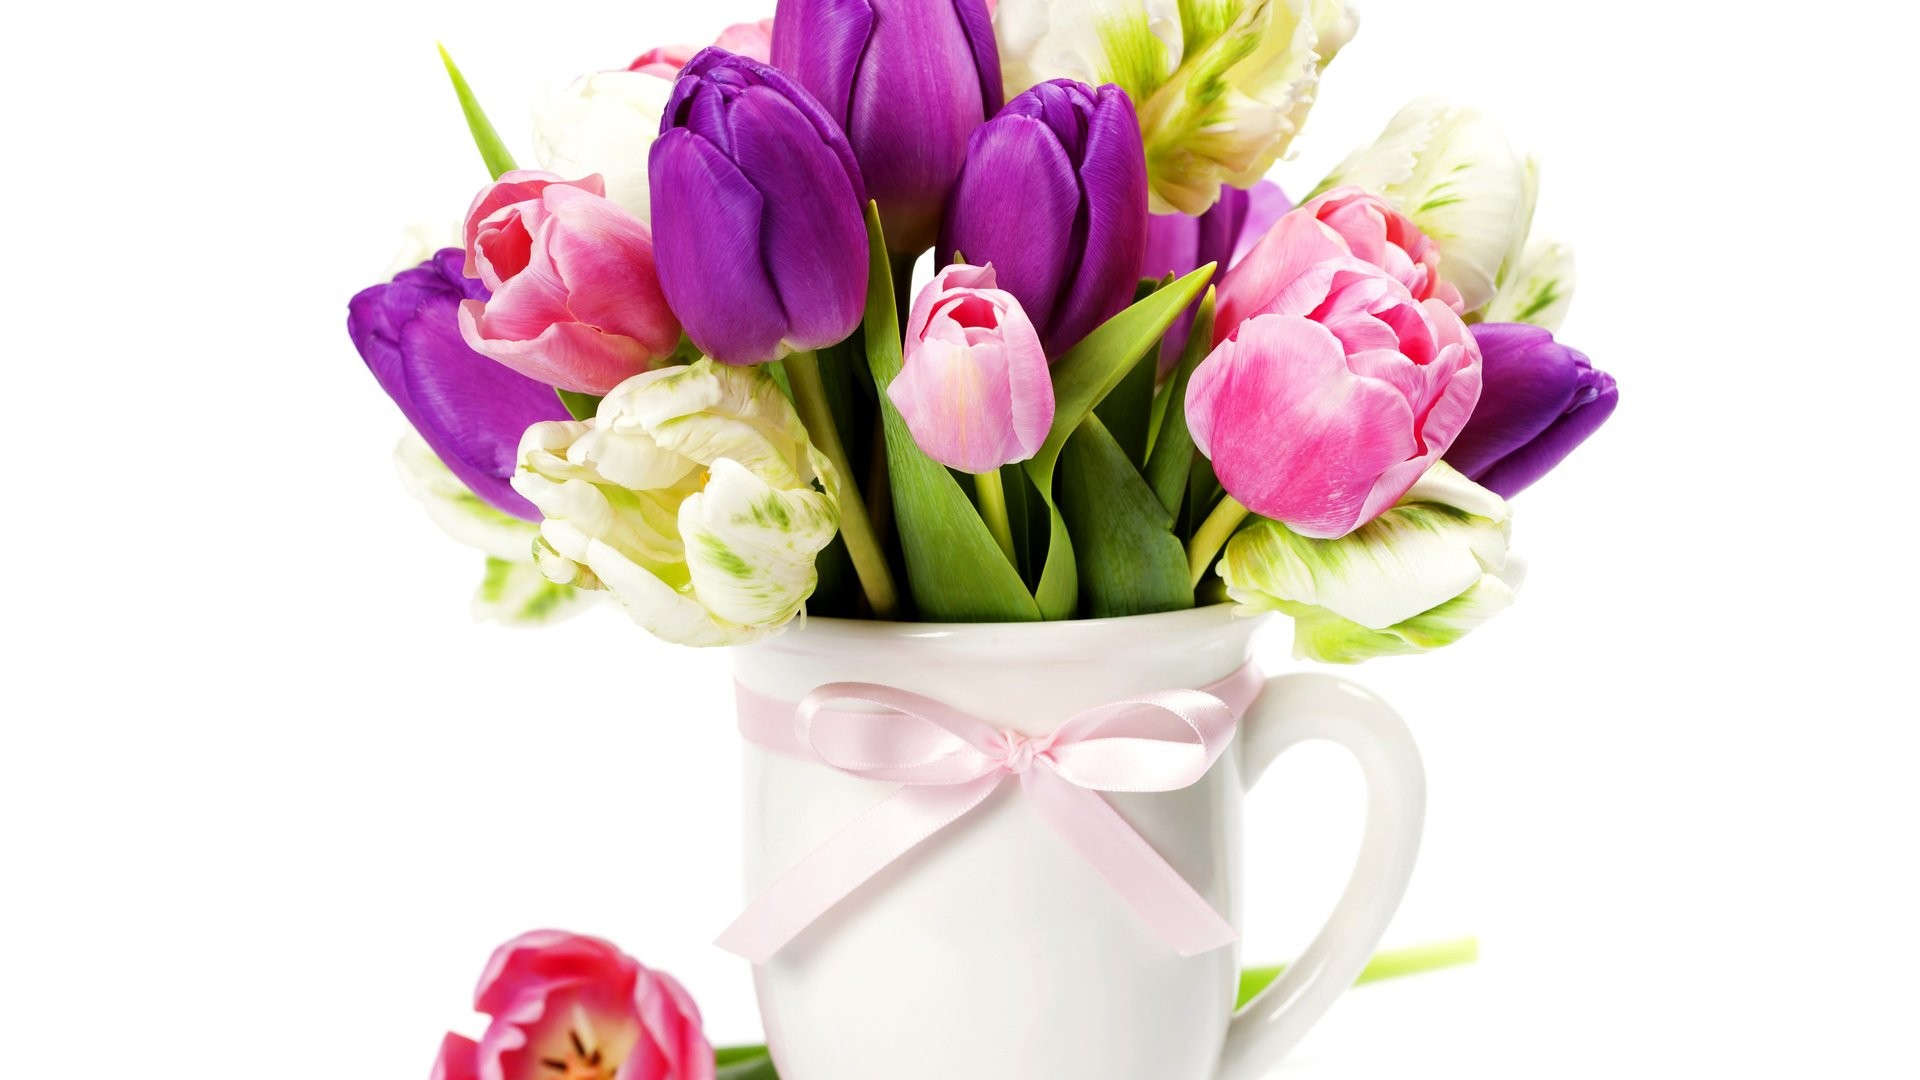 International Women's Day Flowers image theme